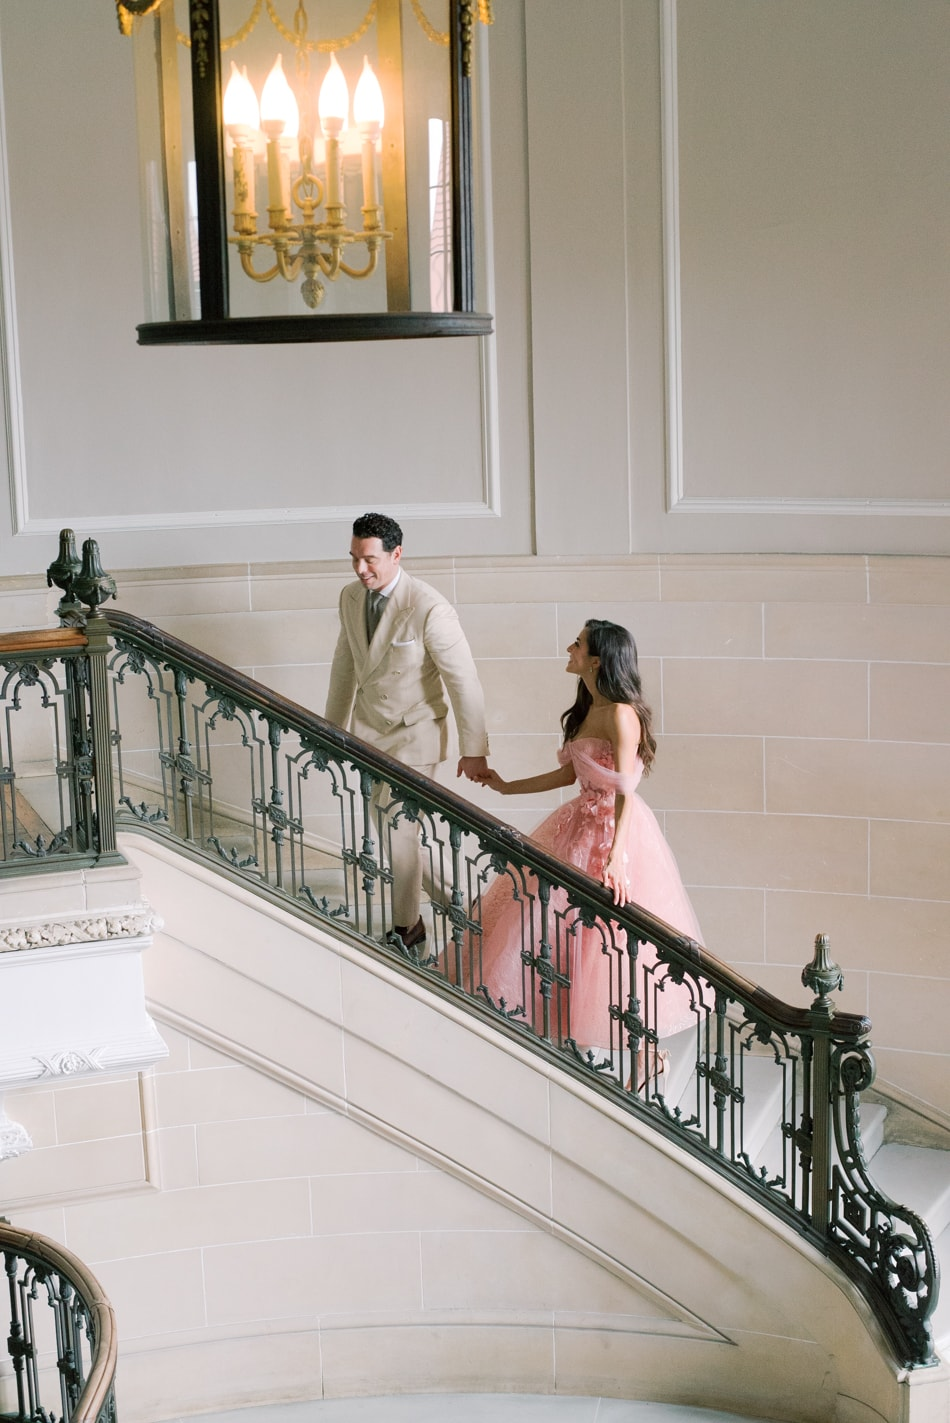 Bride in blush dress walking up the stairs with her groom in Lake Forest